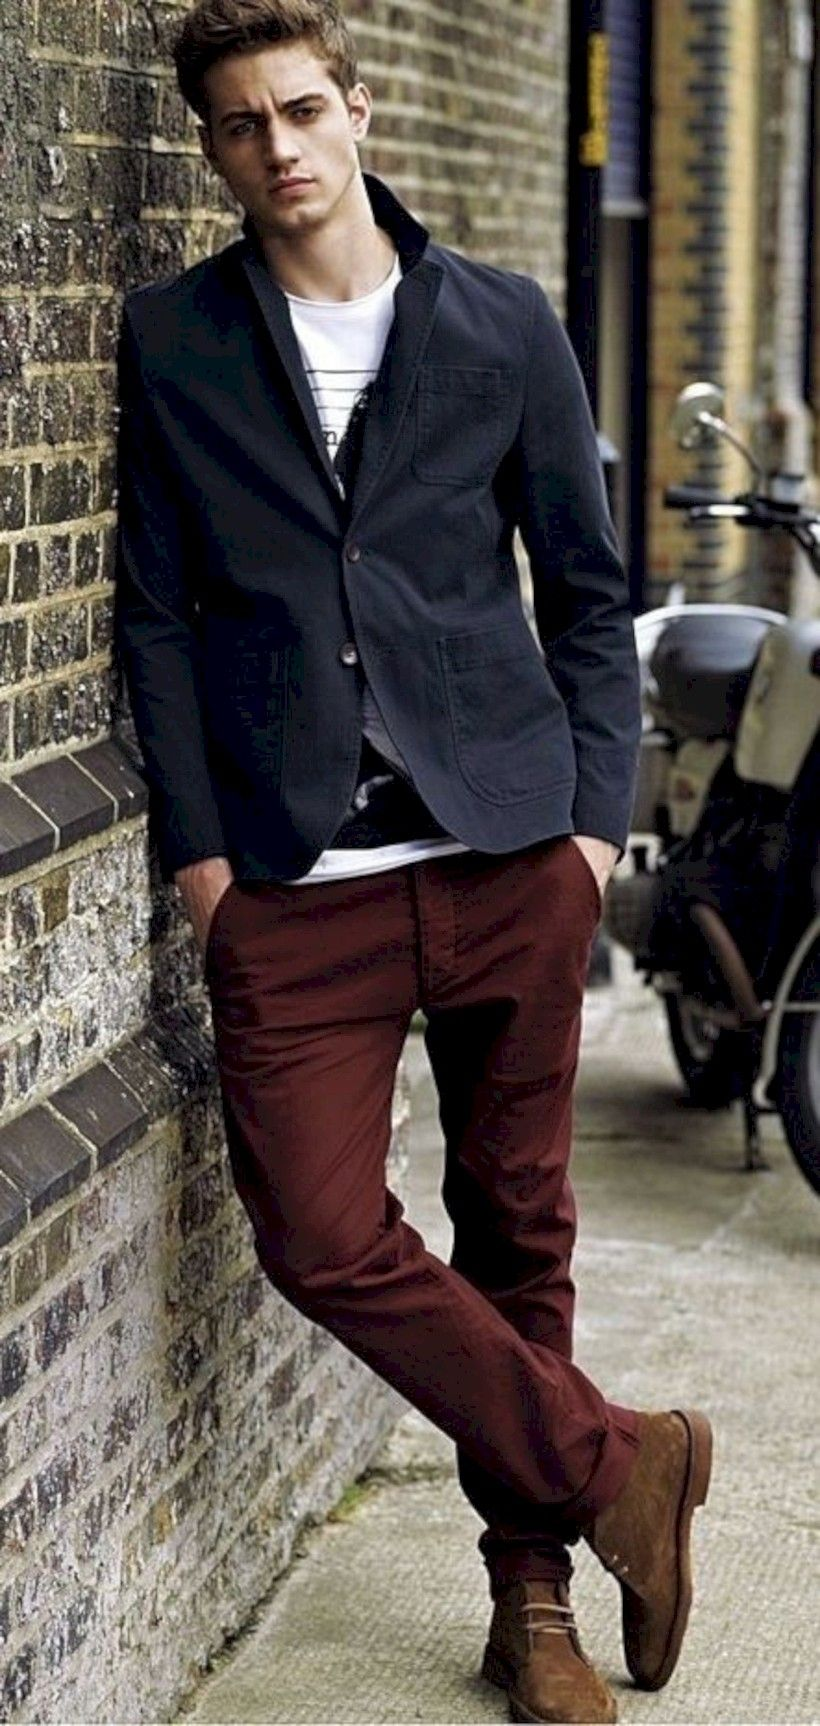 f1e3b02bf3d6 Breathtaking 44 Men Boots Ideas Combination With Casual Outfit  http   99outfit.com